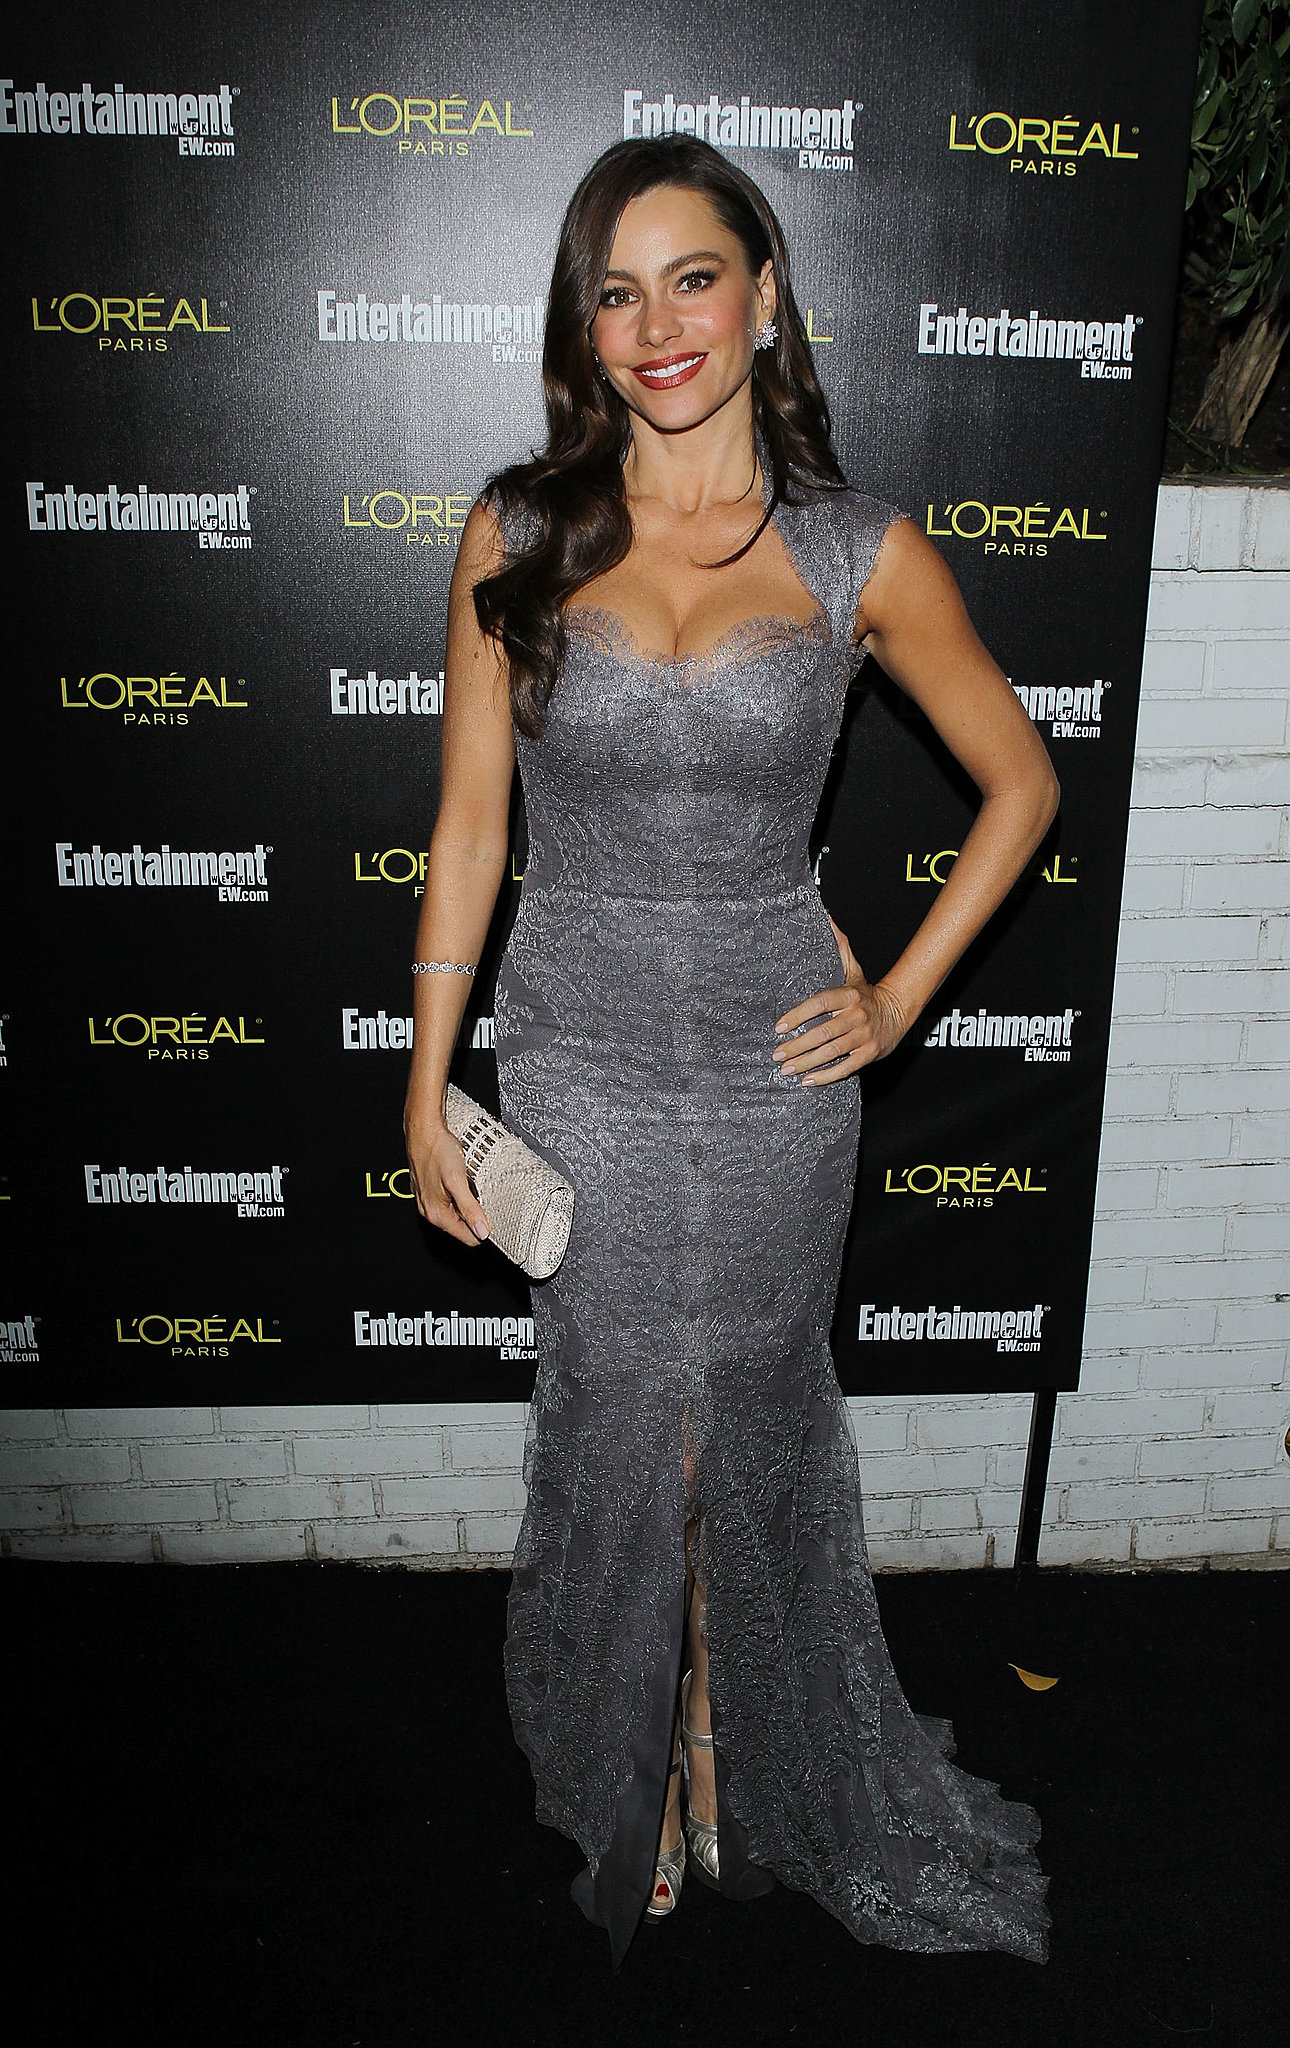 Vergara posed in an icy gray lace-adorned gown, with sweetheart neckline and front-slit details, and silver ankle-strap pumps for an Entertainment Weekly event in January 2011.